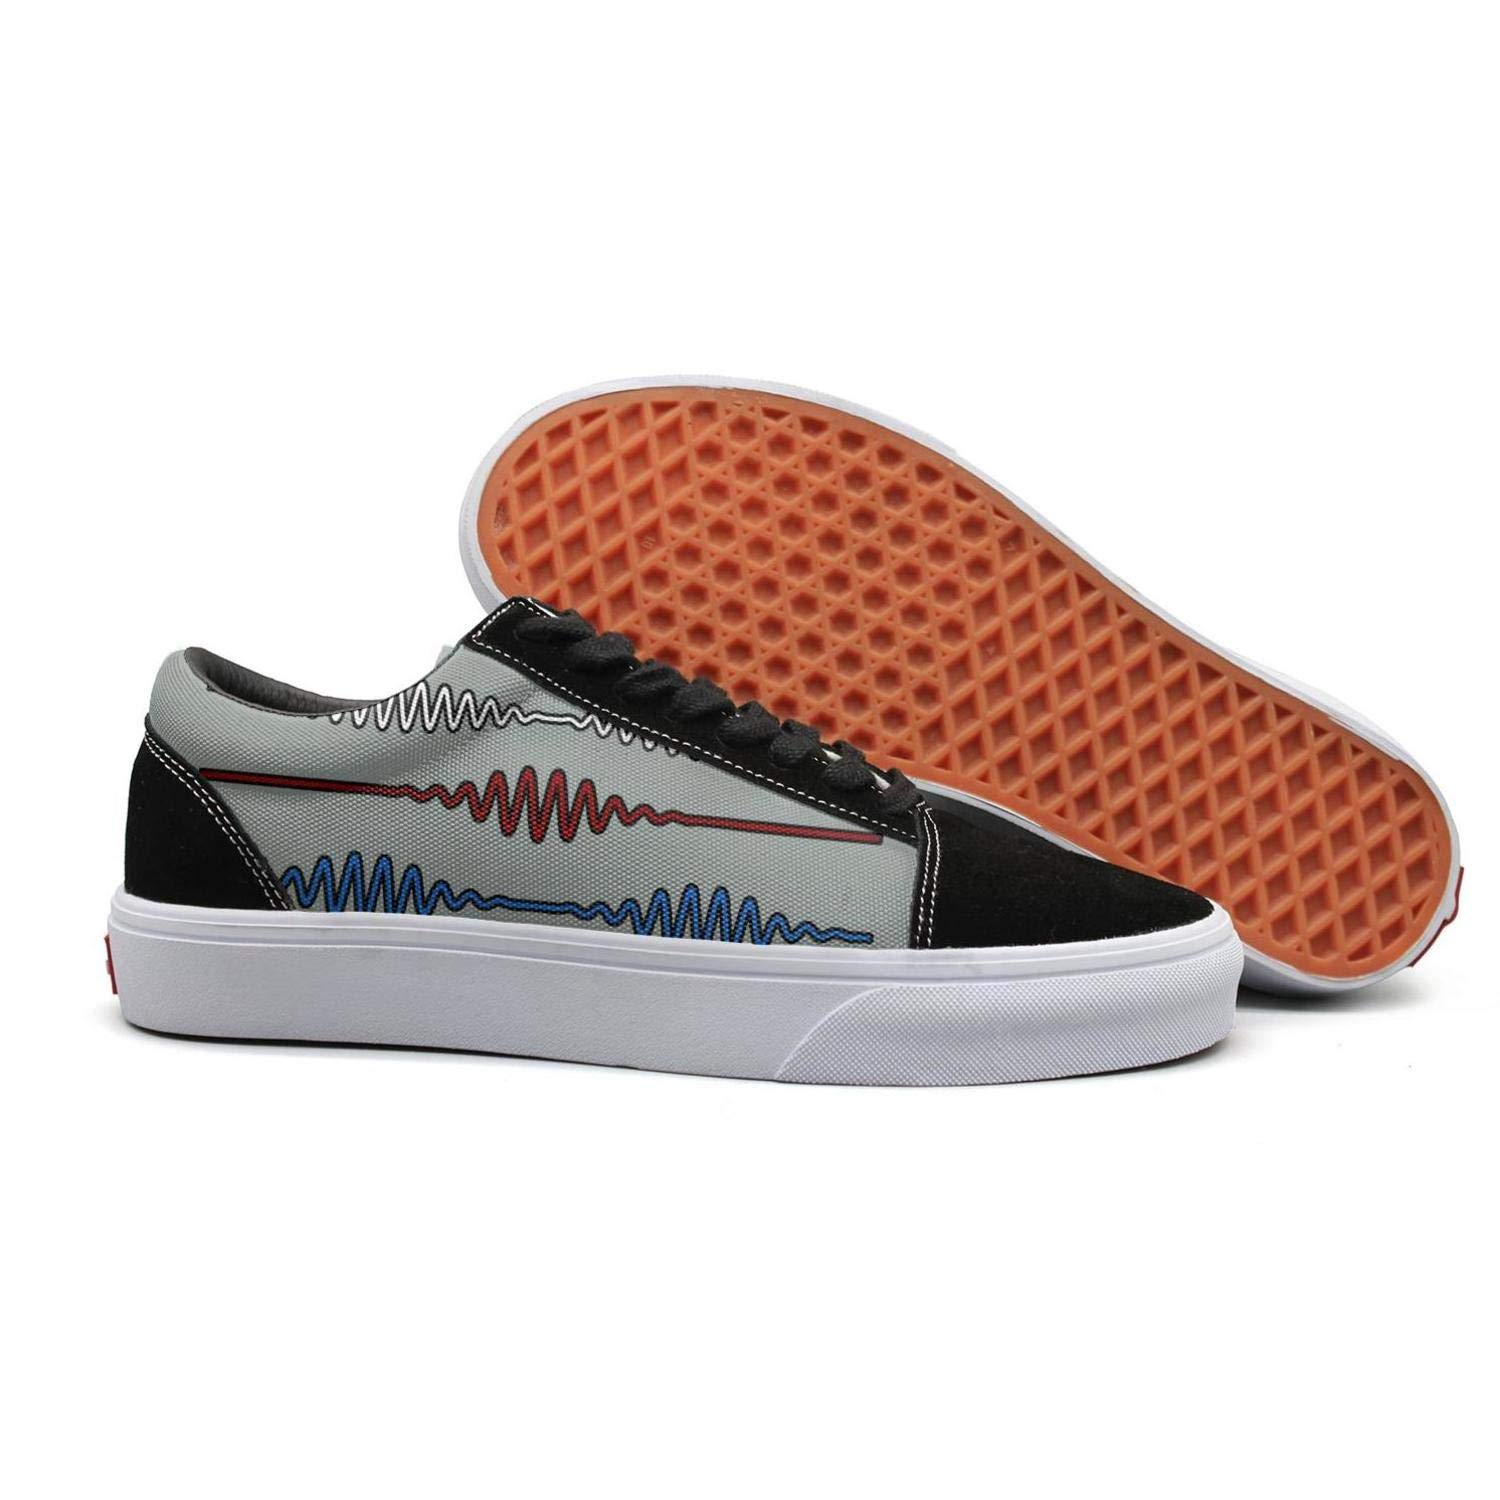 Shoe Womens Skate Sneaker for Womens Budge Leather Wear-Resistant Arctic-Monkeys-Do-I-Wanna-Know-Rig